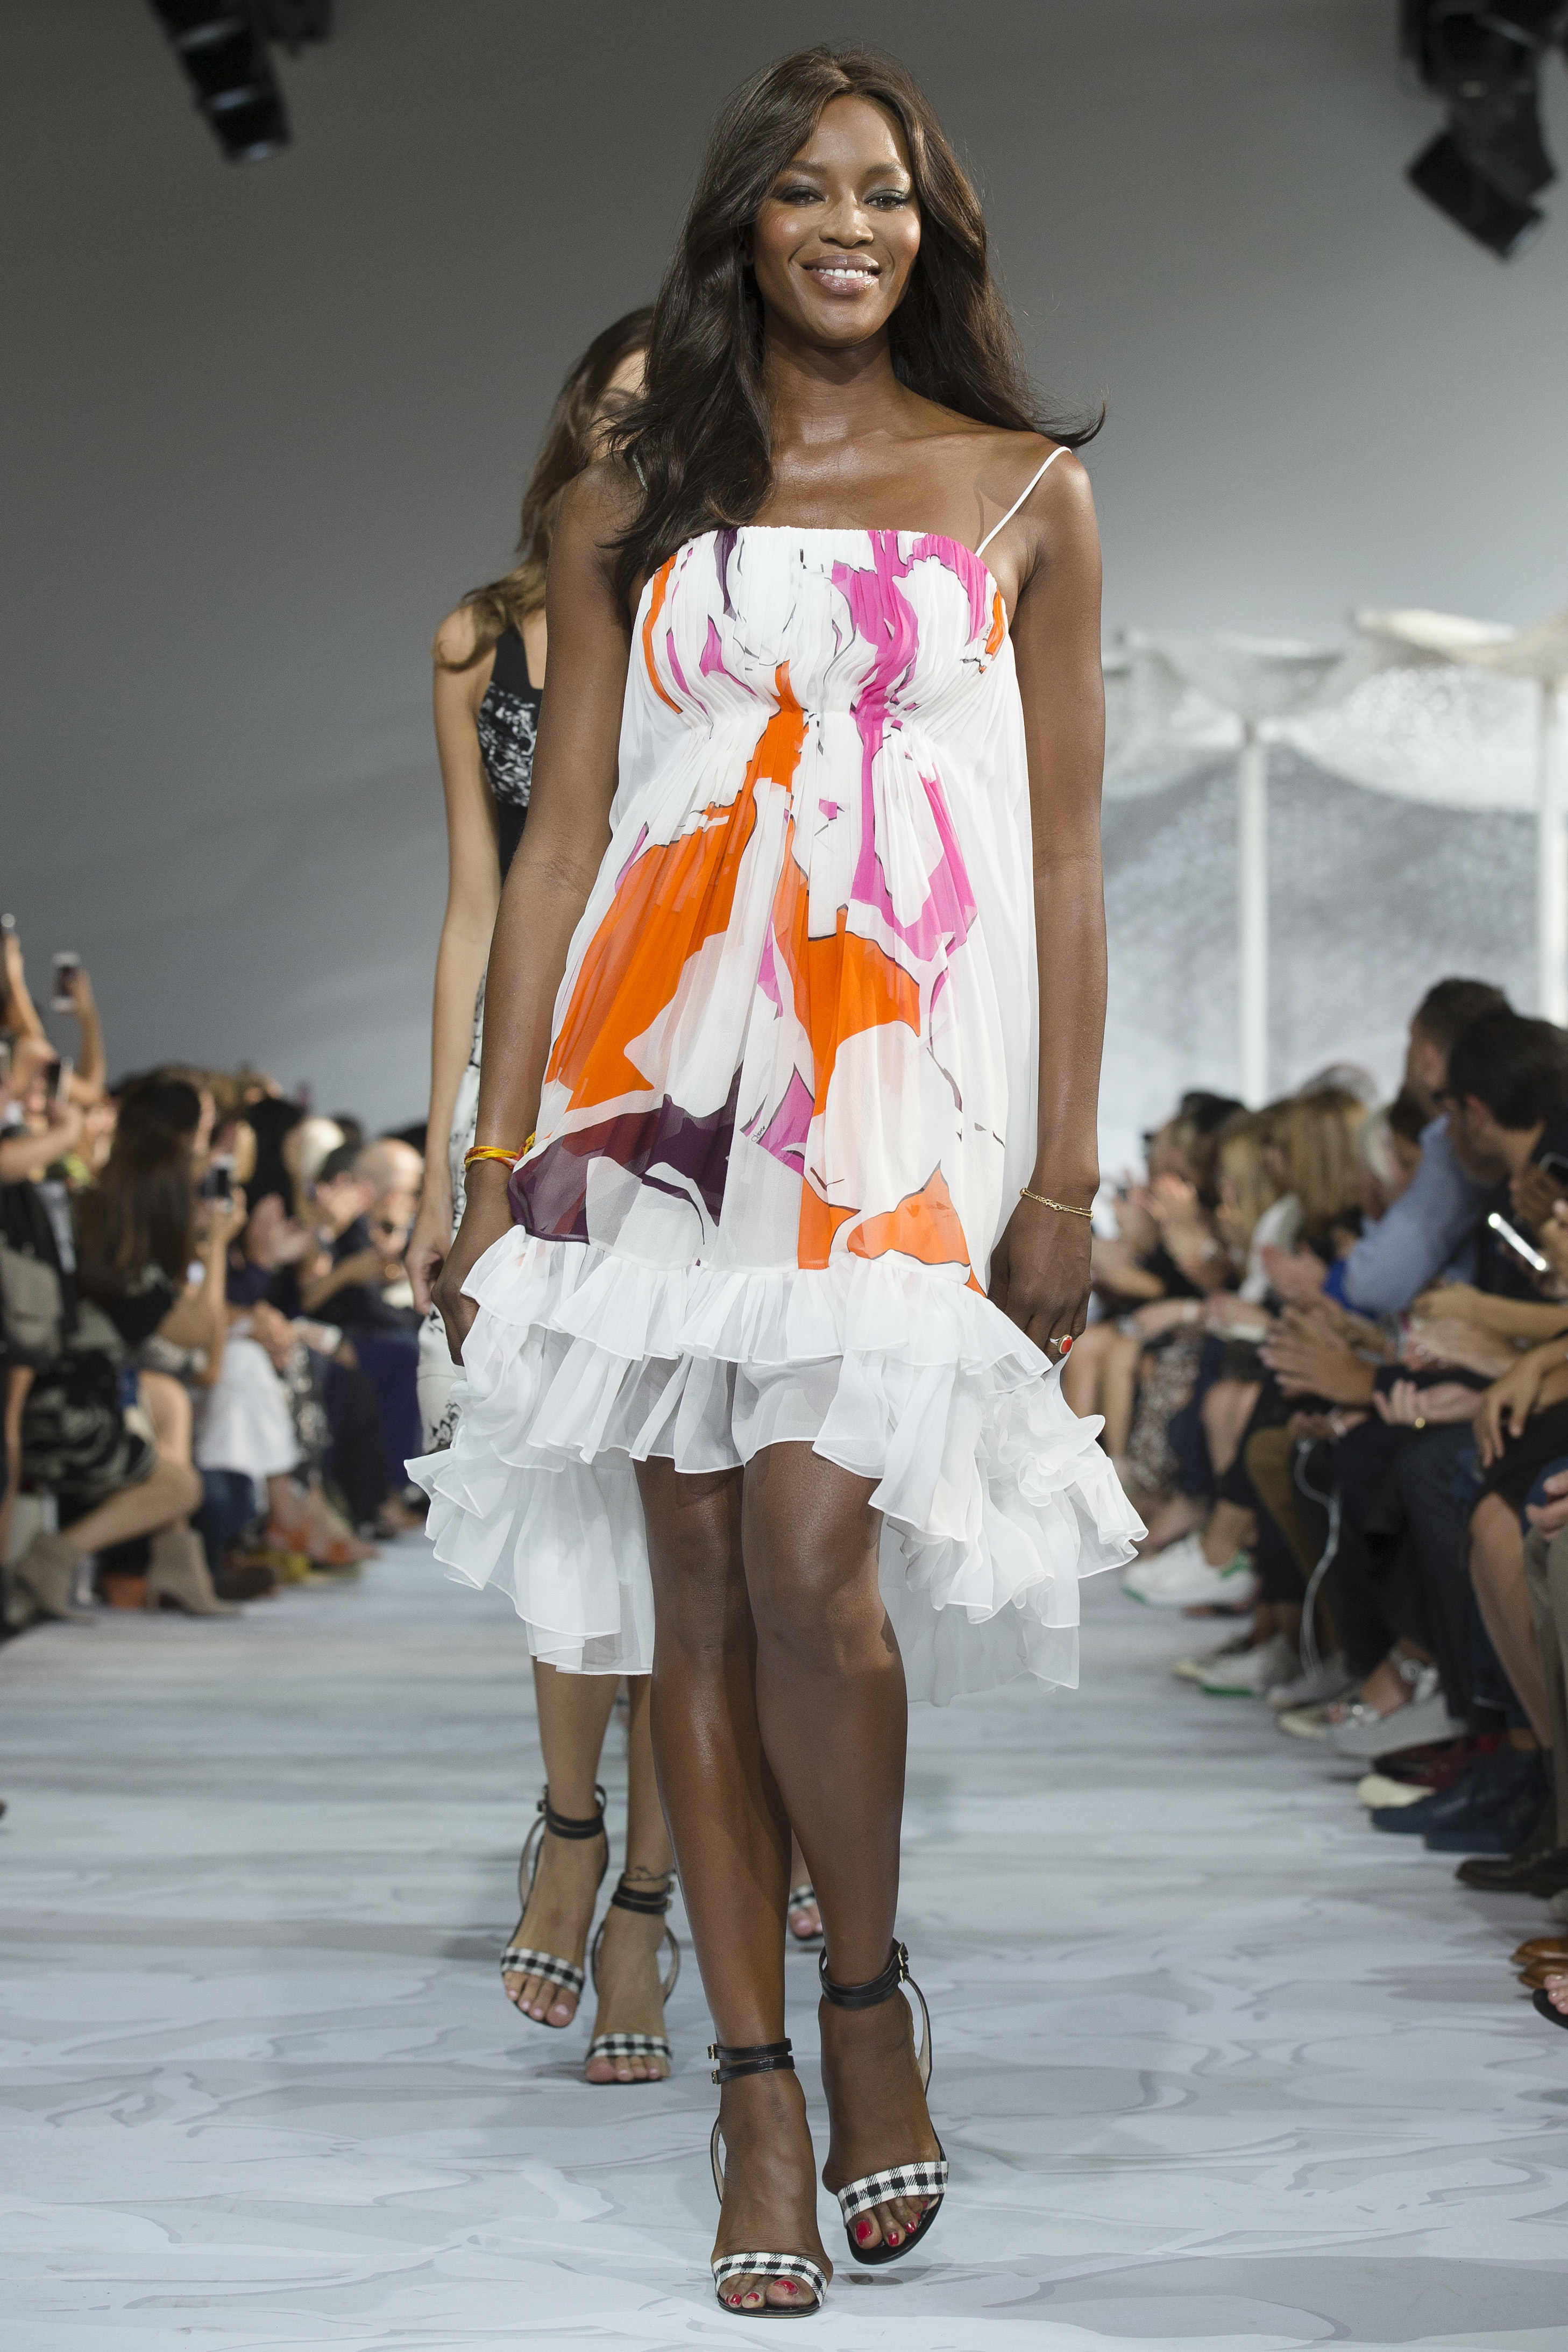 Naomi Campbell hopes to fight Ebola with fashion fundraiser